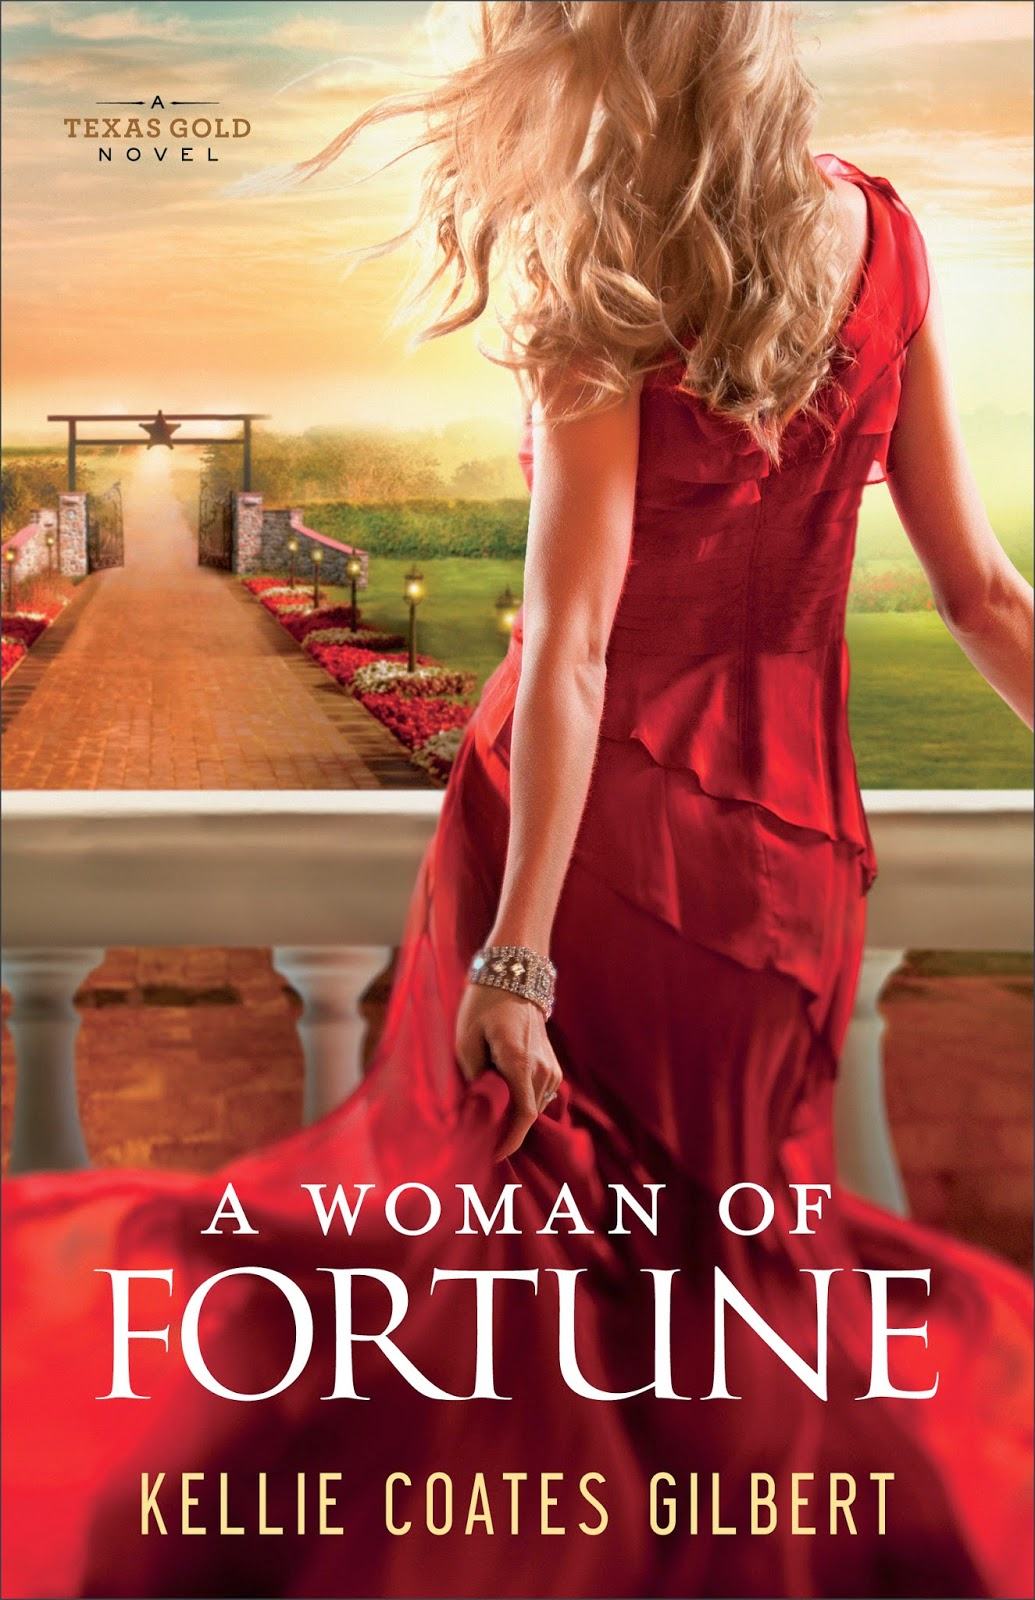 A Woman of Fortune (Texas Gold Collection) by Kellie Coates Gilbert